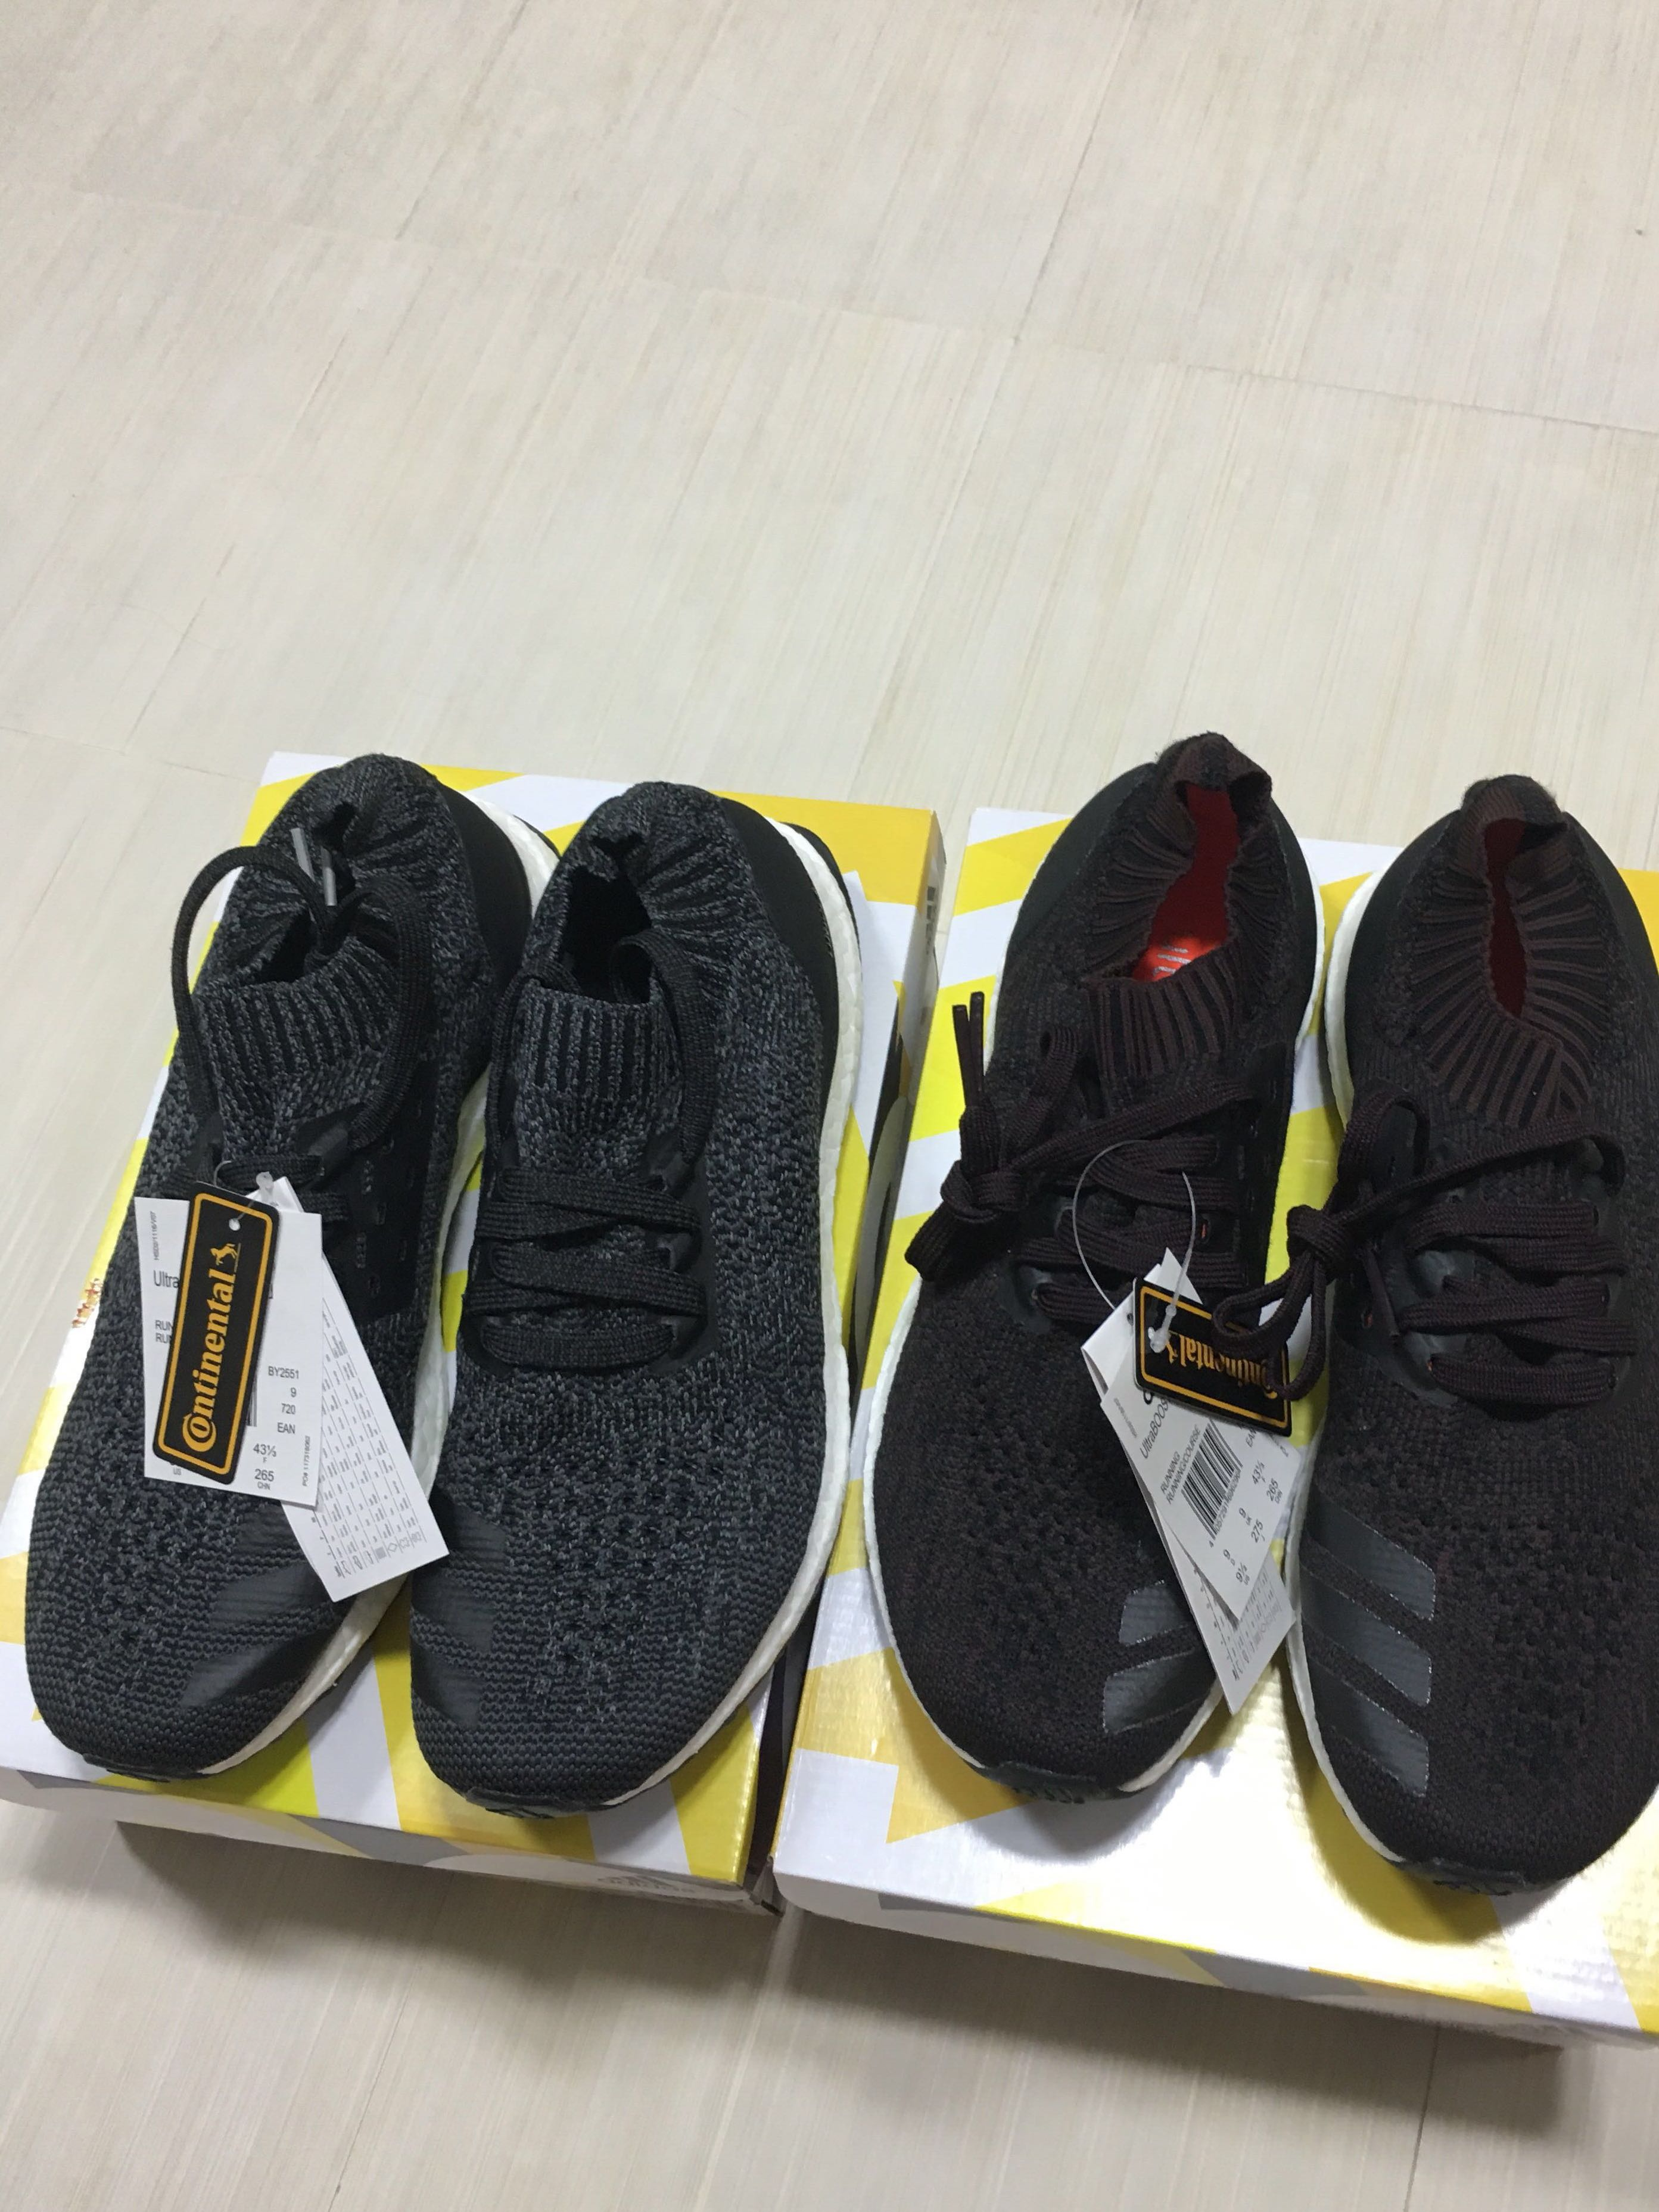 9d126ac25 Adidas Ultraboost Uncaged US9.5 Black